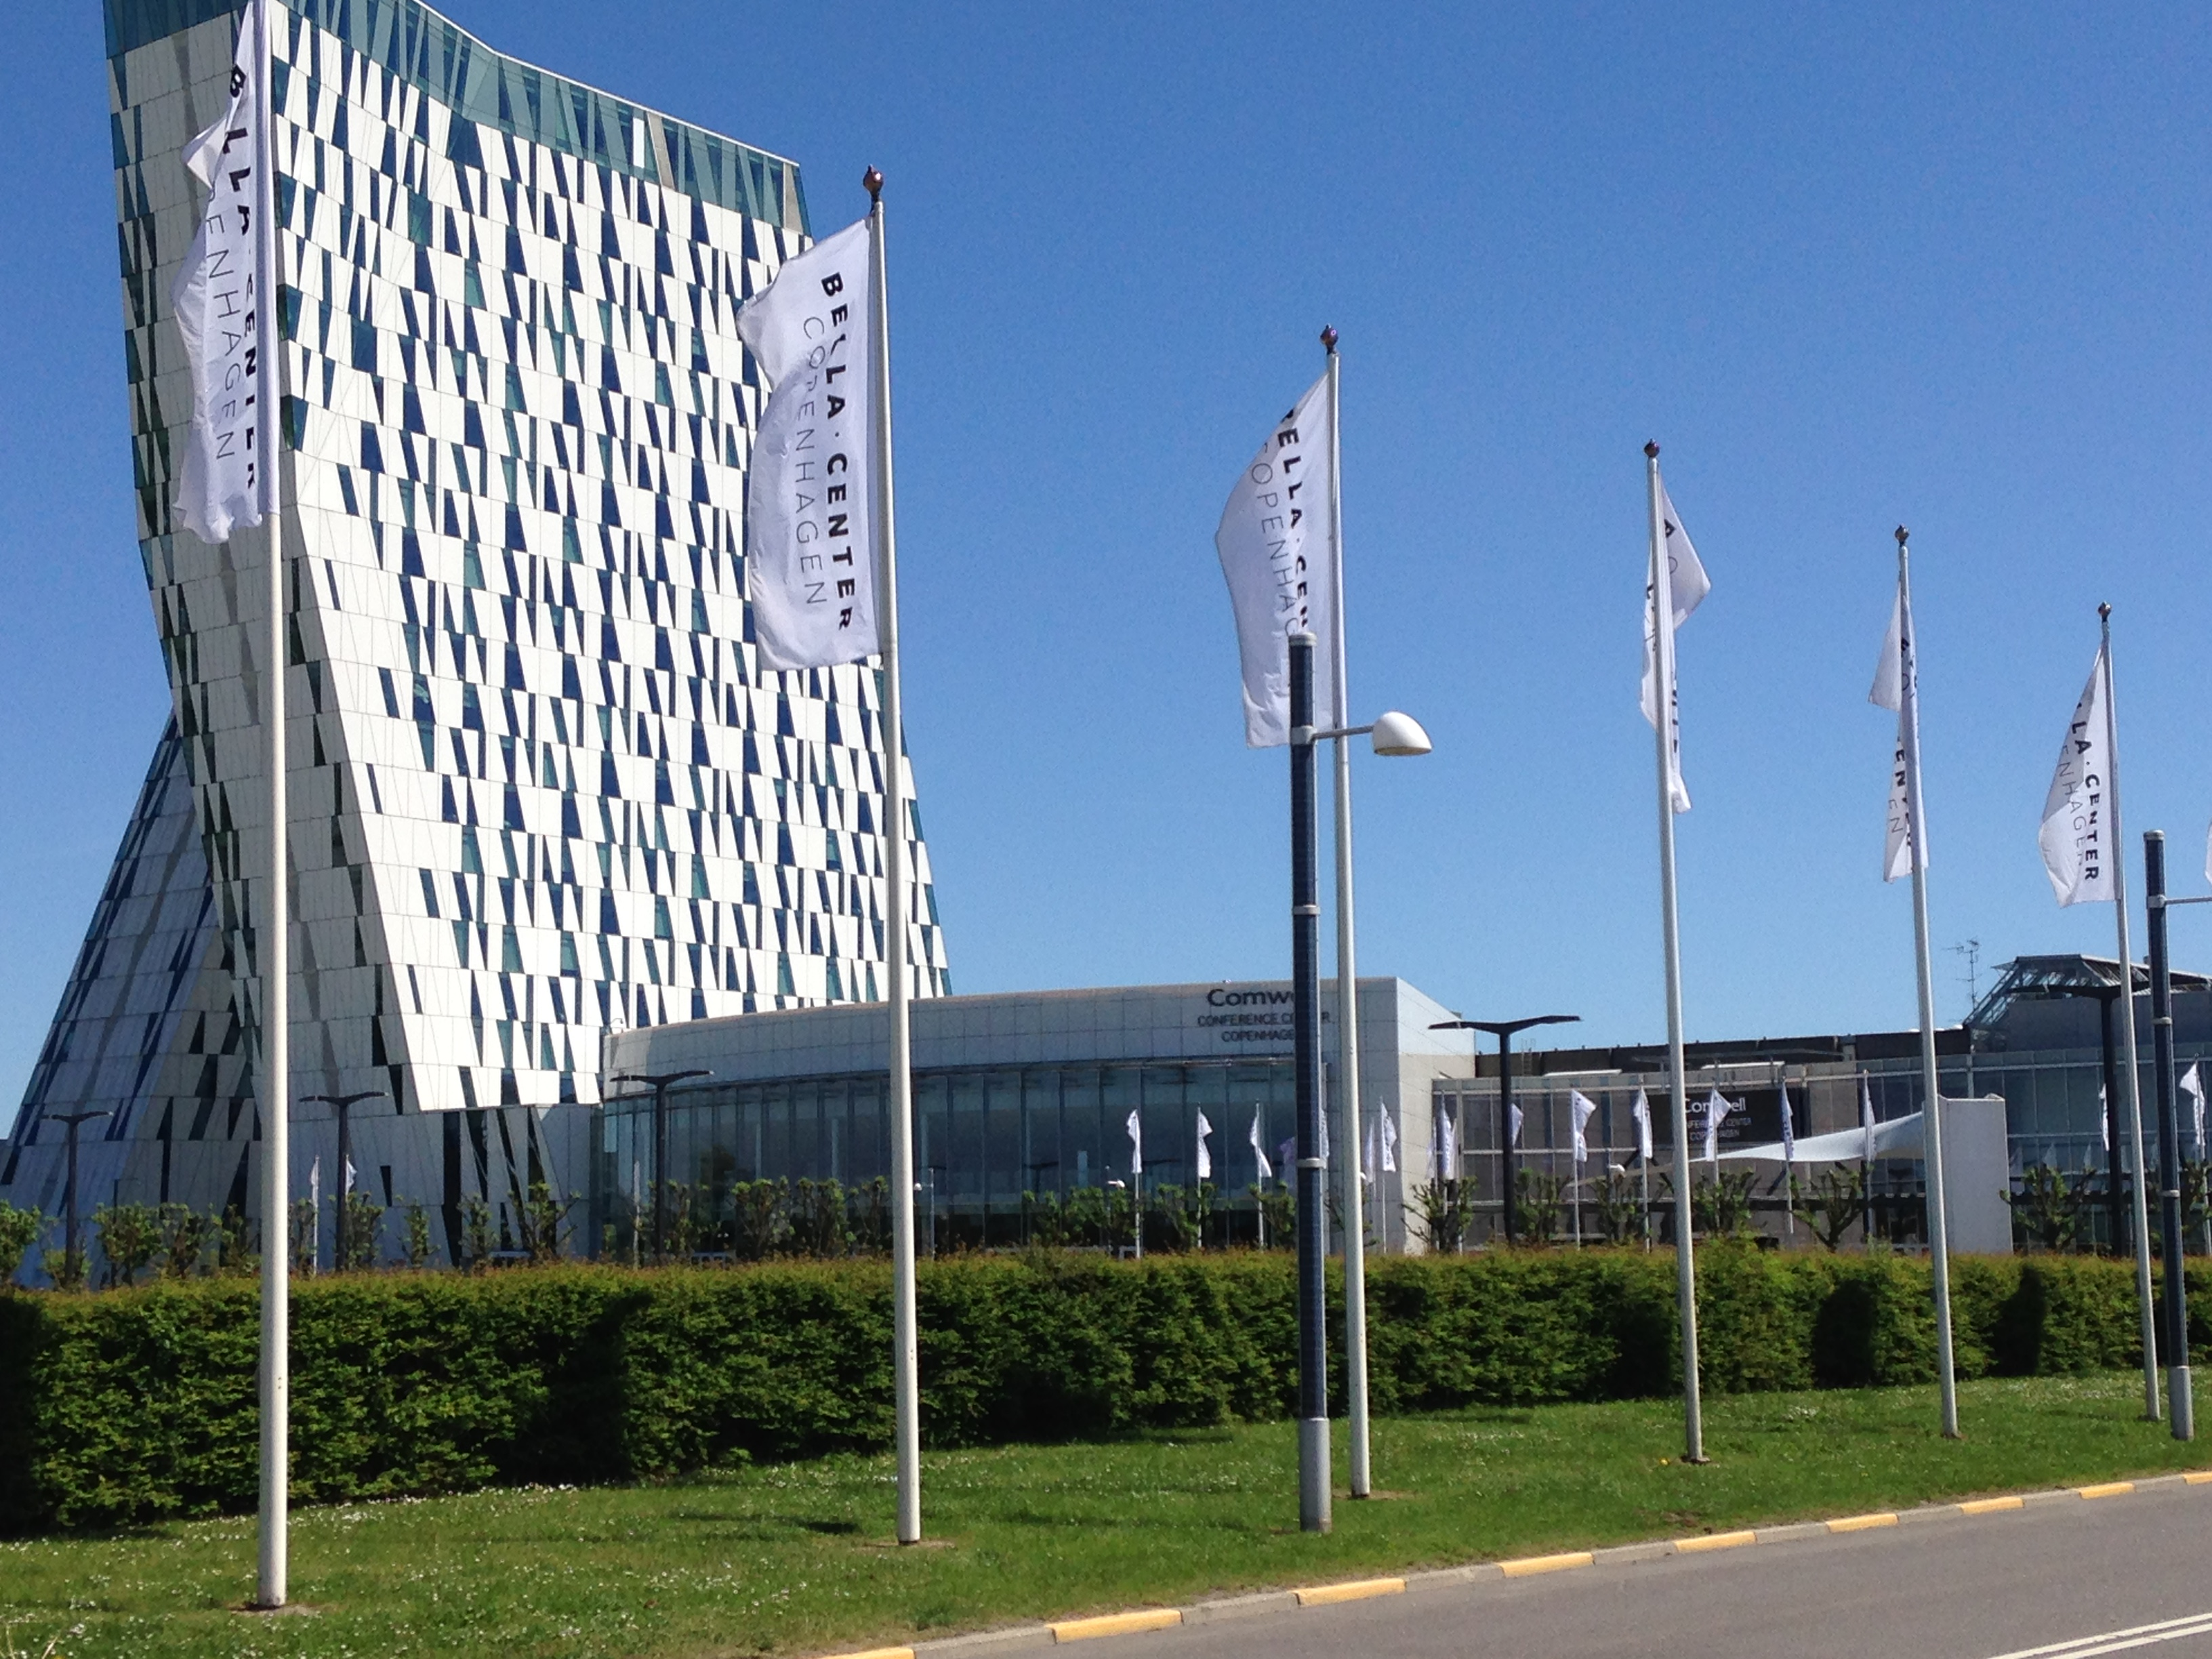 Venue of ESHG 2017: Bella Center in Copenhagen